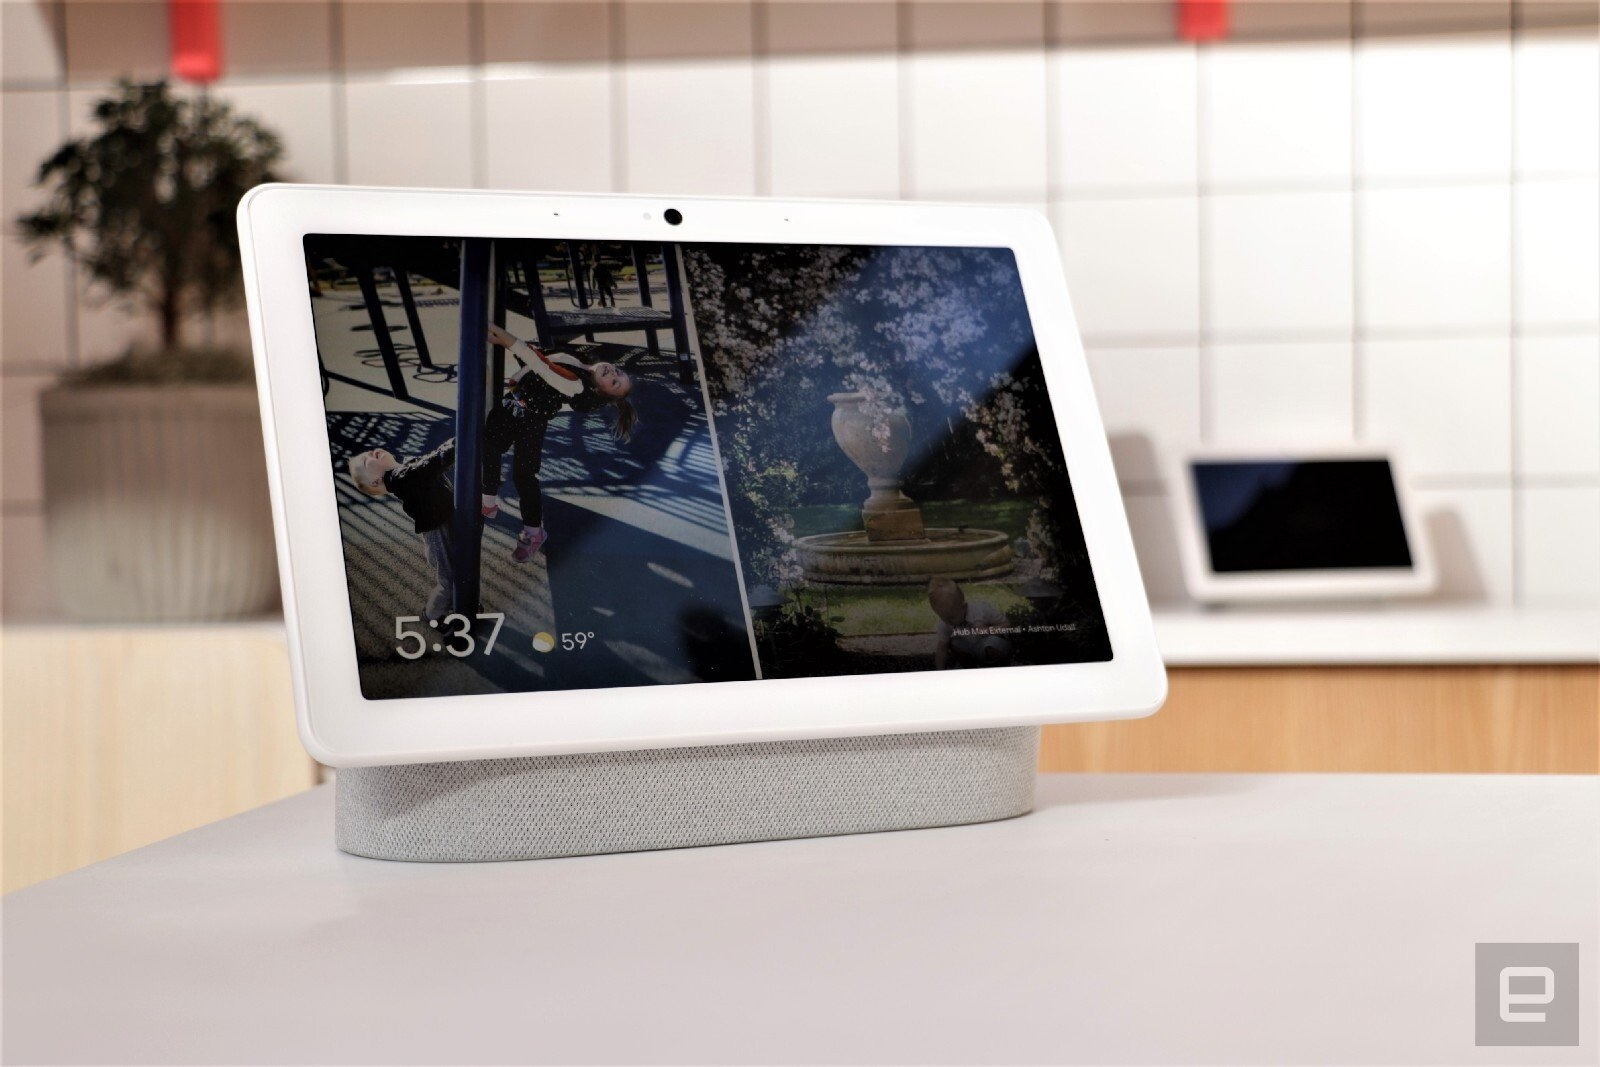 Google rolls out a refreshed, more personal Smart Display interface | DeviceDaily.com